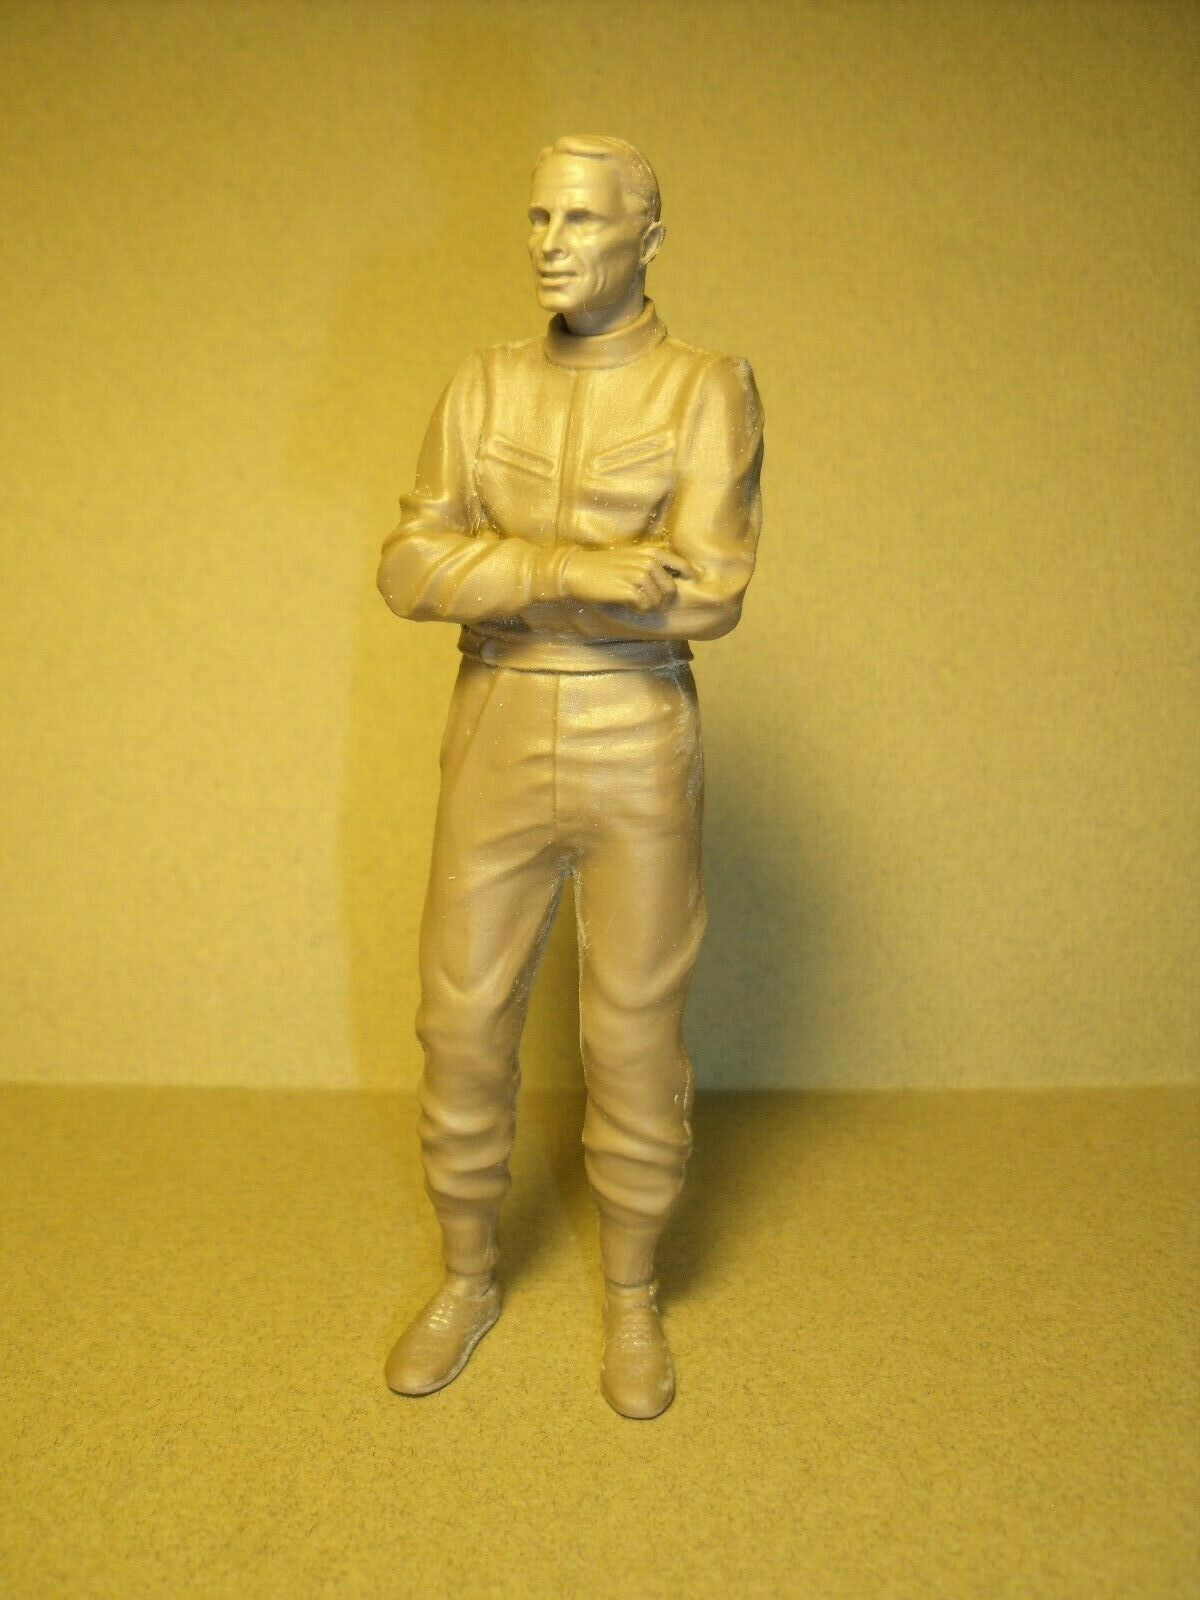 DAN  GURNEY  1 18  FIGURE  BY  VROOM  3D  FOR  EXOTO  SHELBY  COLLECTIBLES  1 18